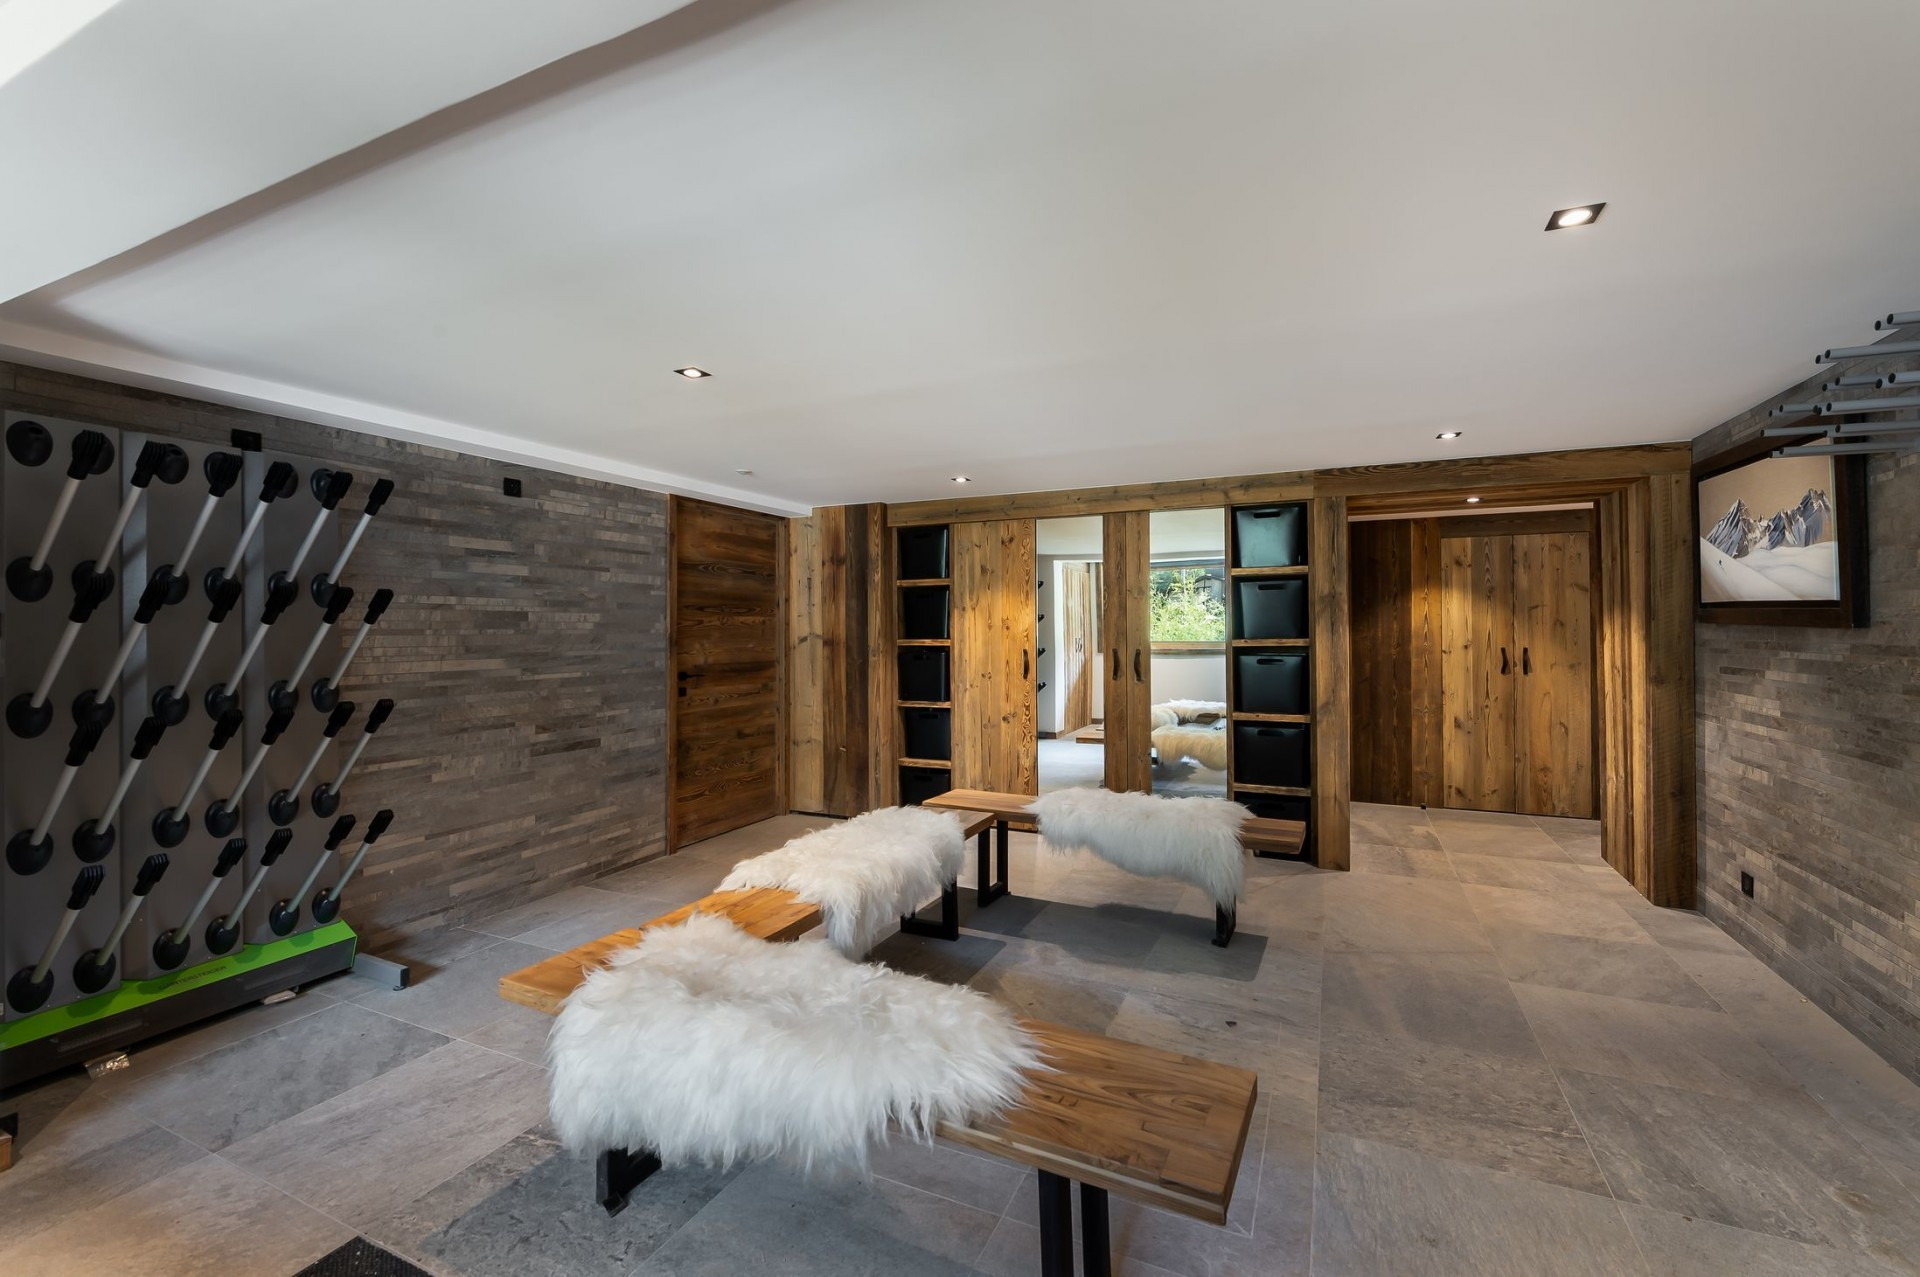 Val d'Isère Location Chalet Luxe Tellanche Local A Ski